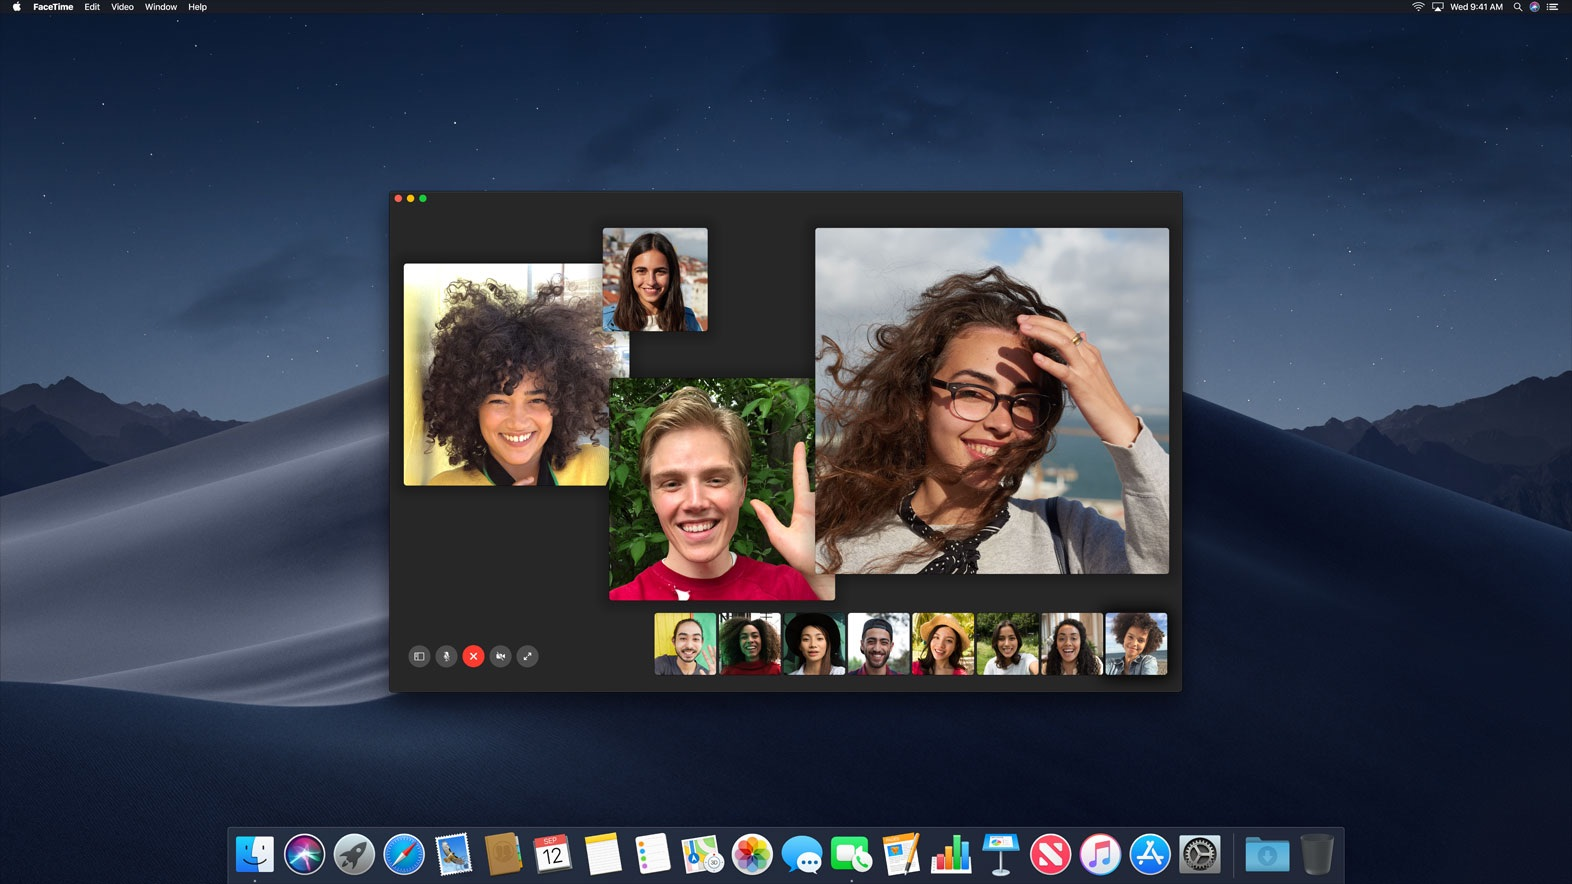 Group FaceTime macOS Mojave